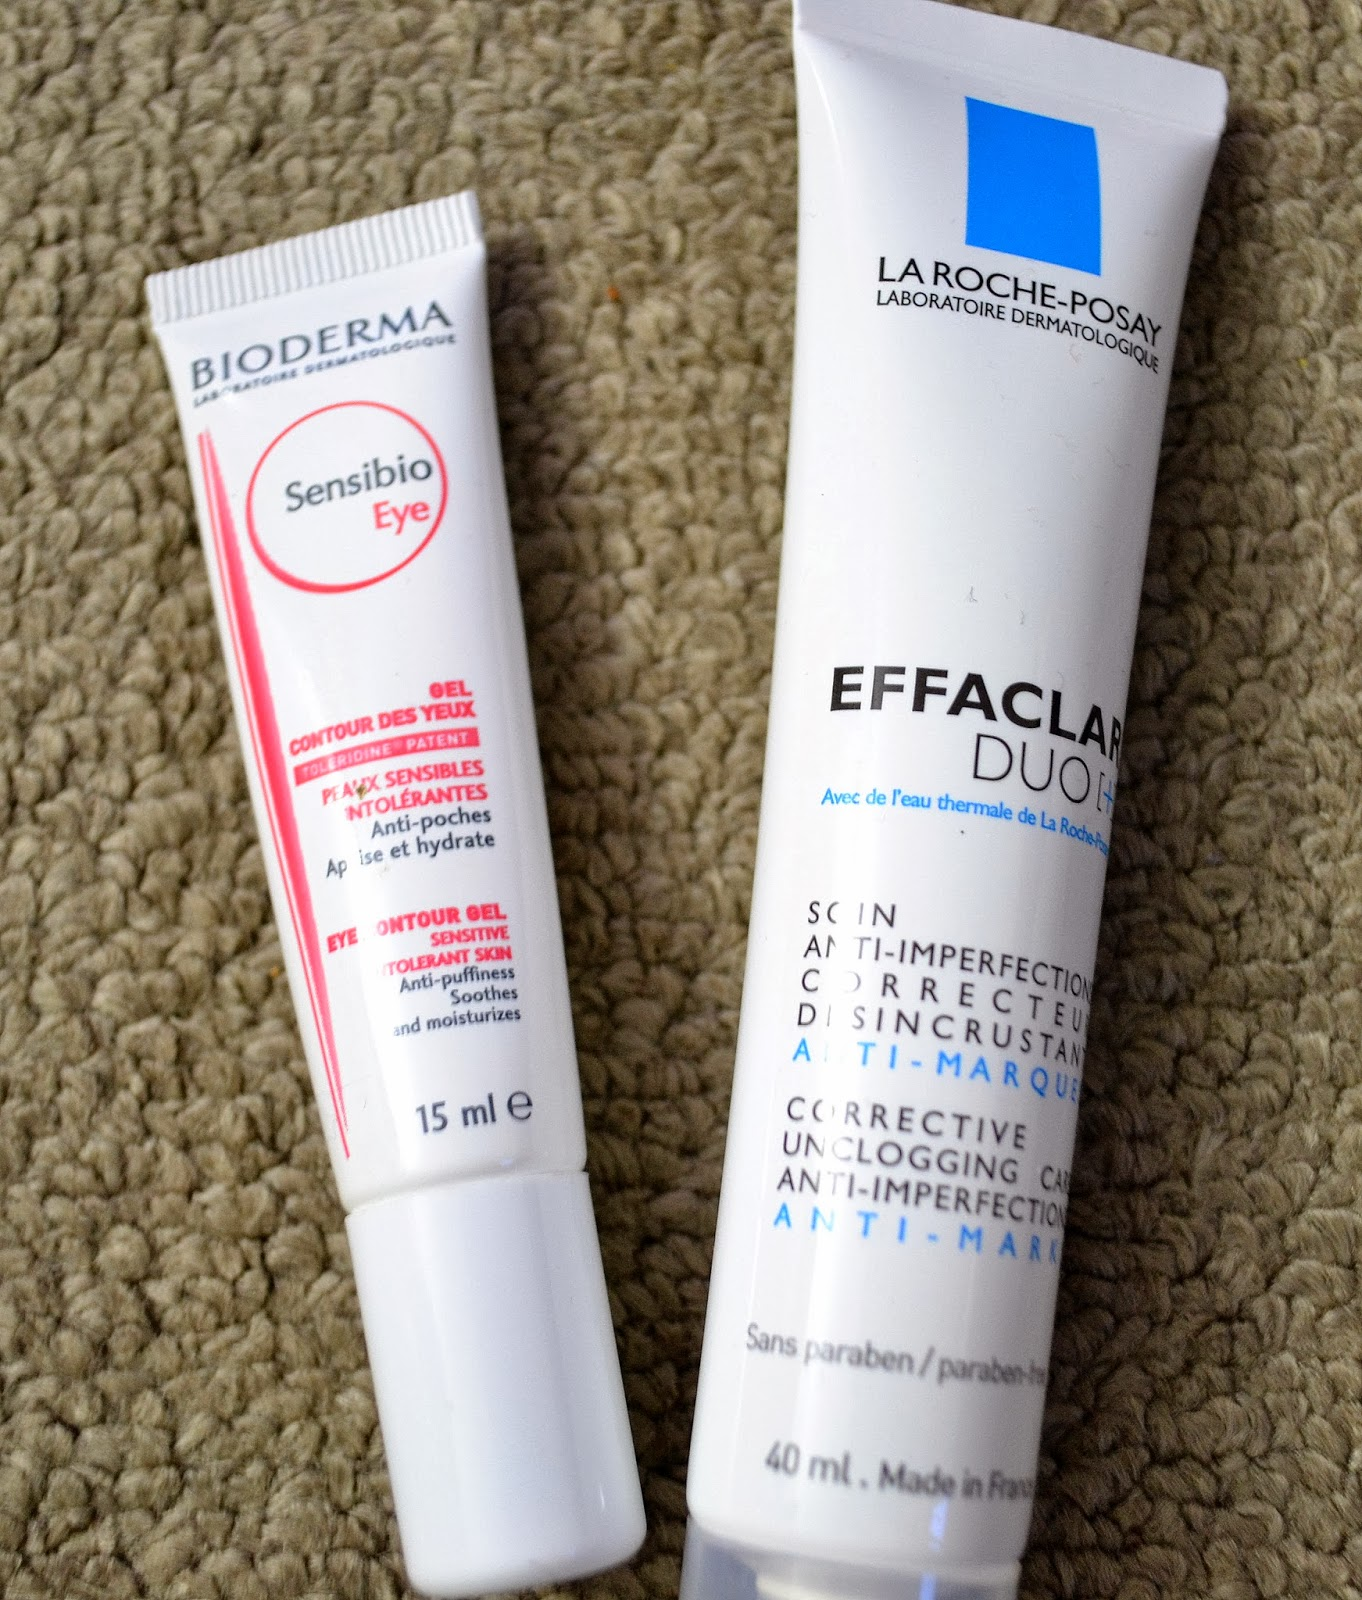 Morning Skincare Routine - la roche posay effaclar duo+, bioderma sensibio eye cream - Beauty by Eff